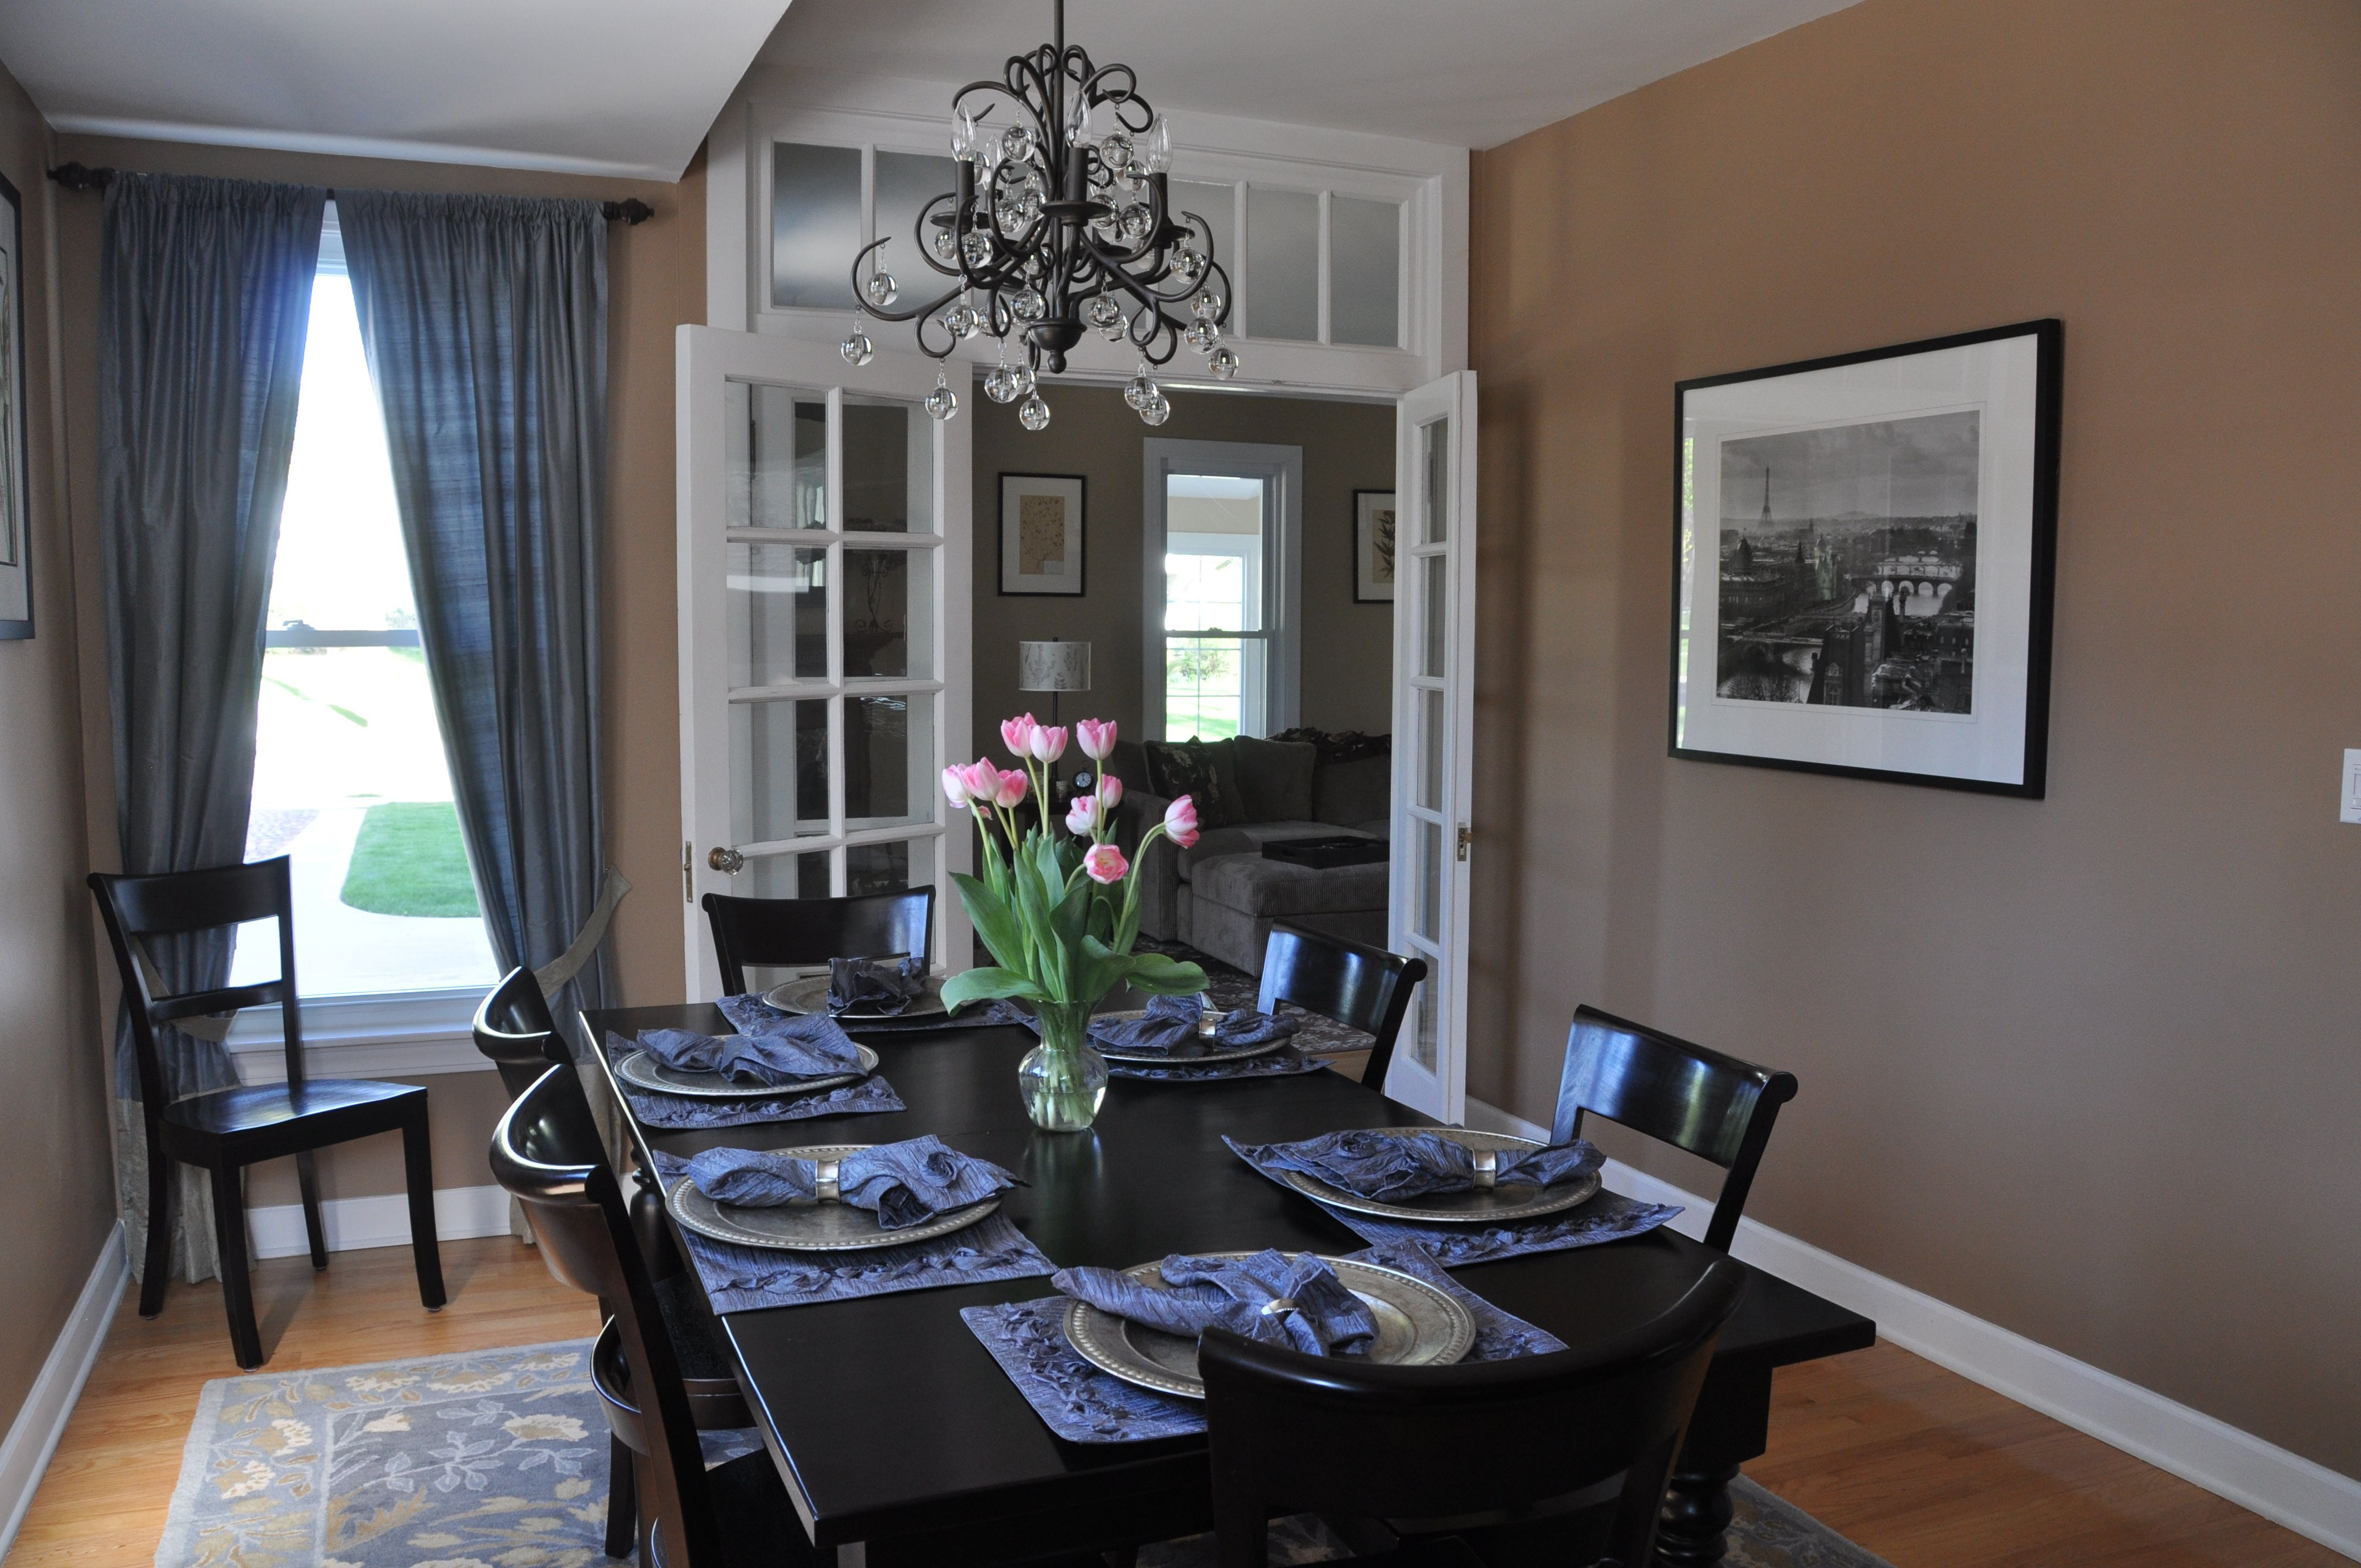 How the Bellora Chandelier looks in the dining room